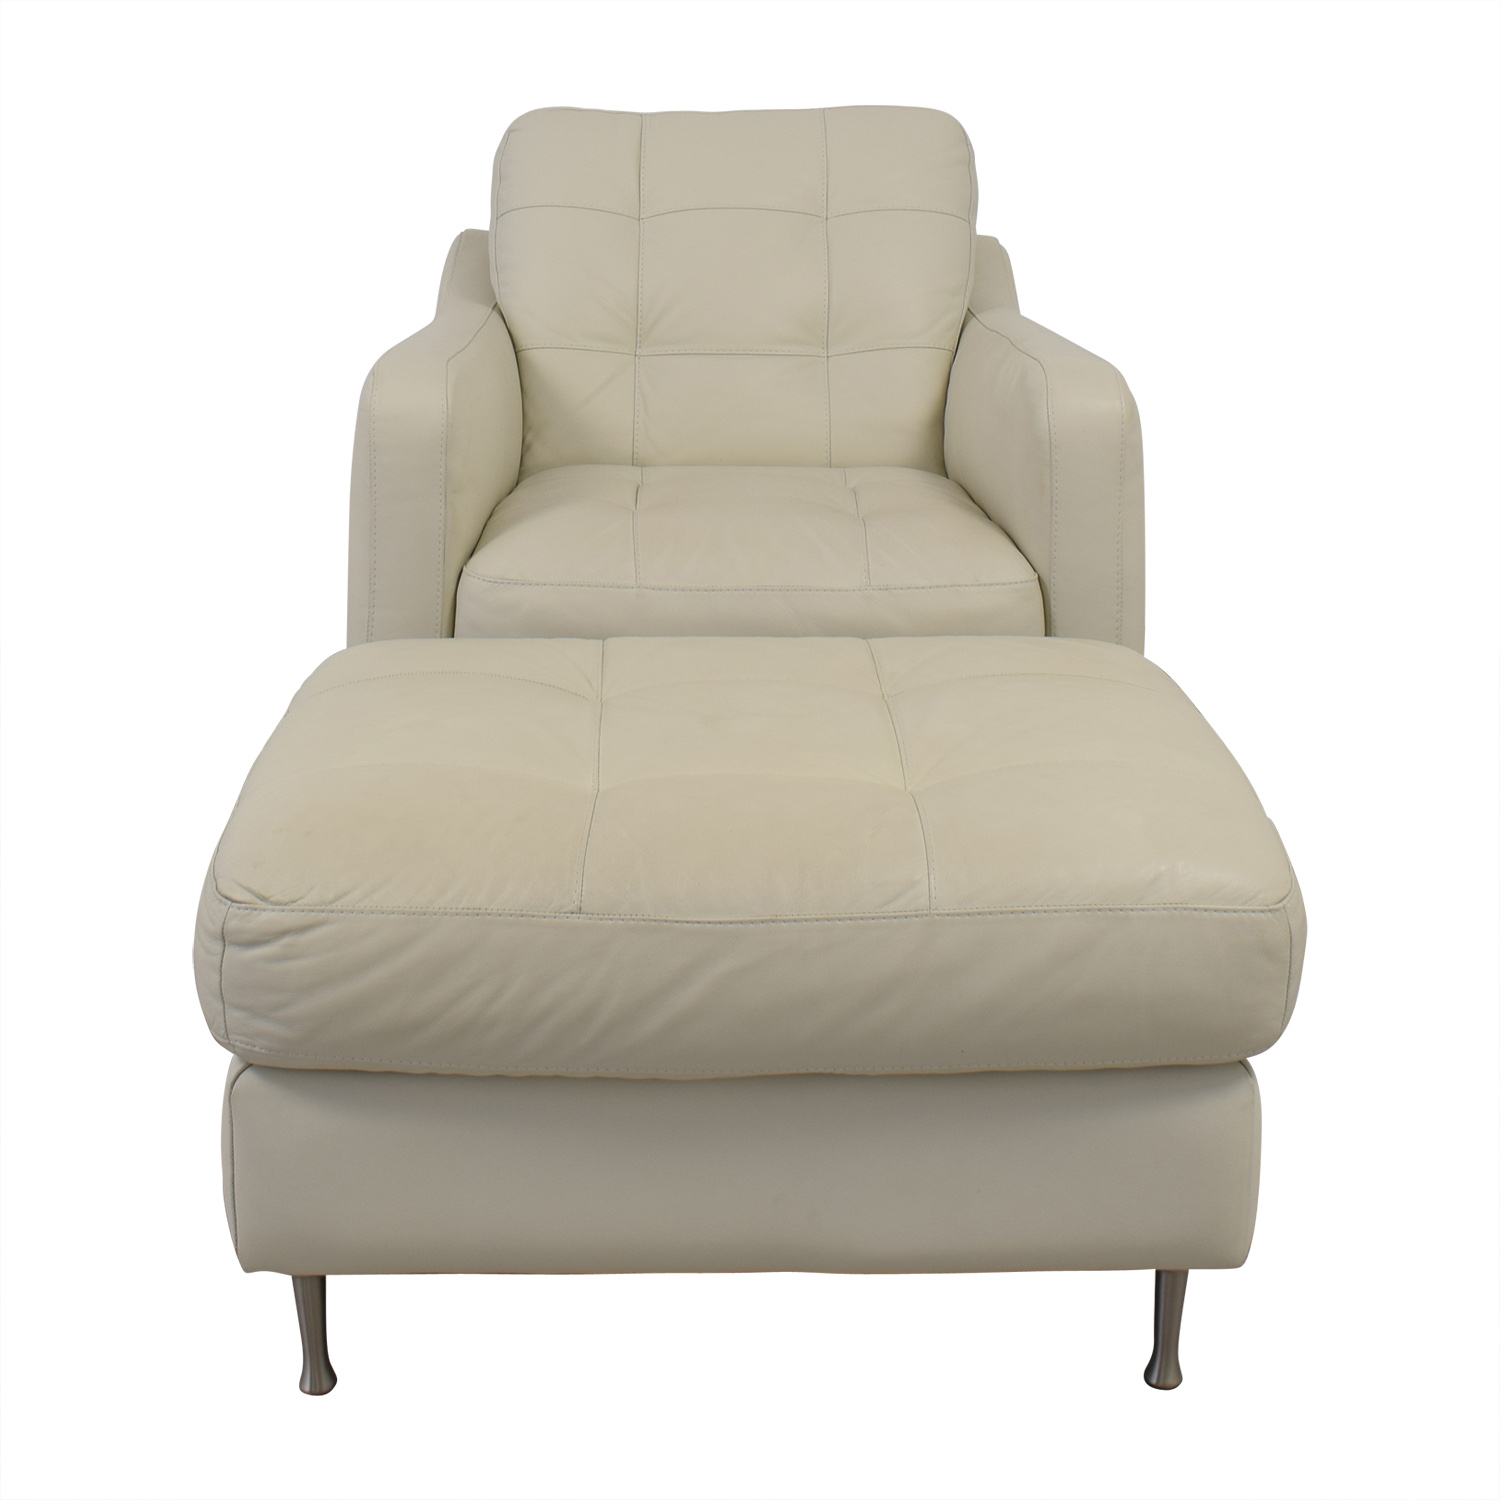 Natuzzi White Leather Chair & Ottoman sale